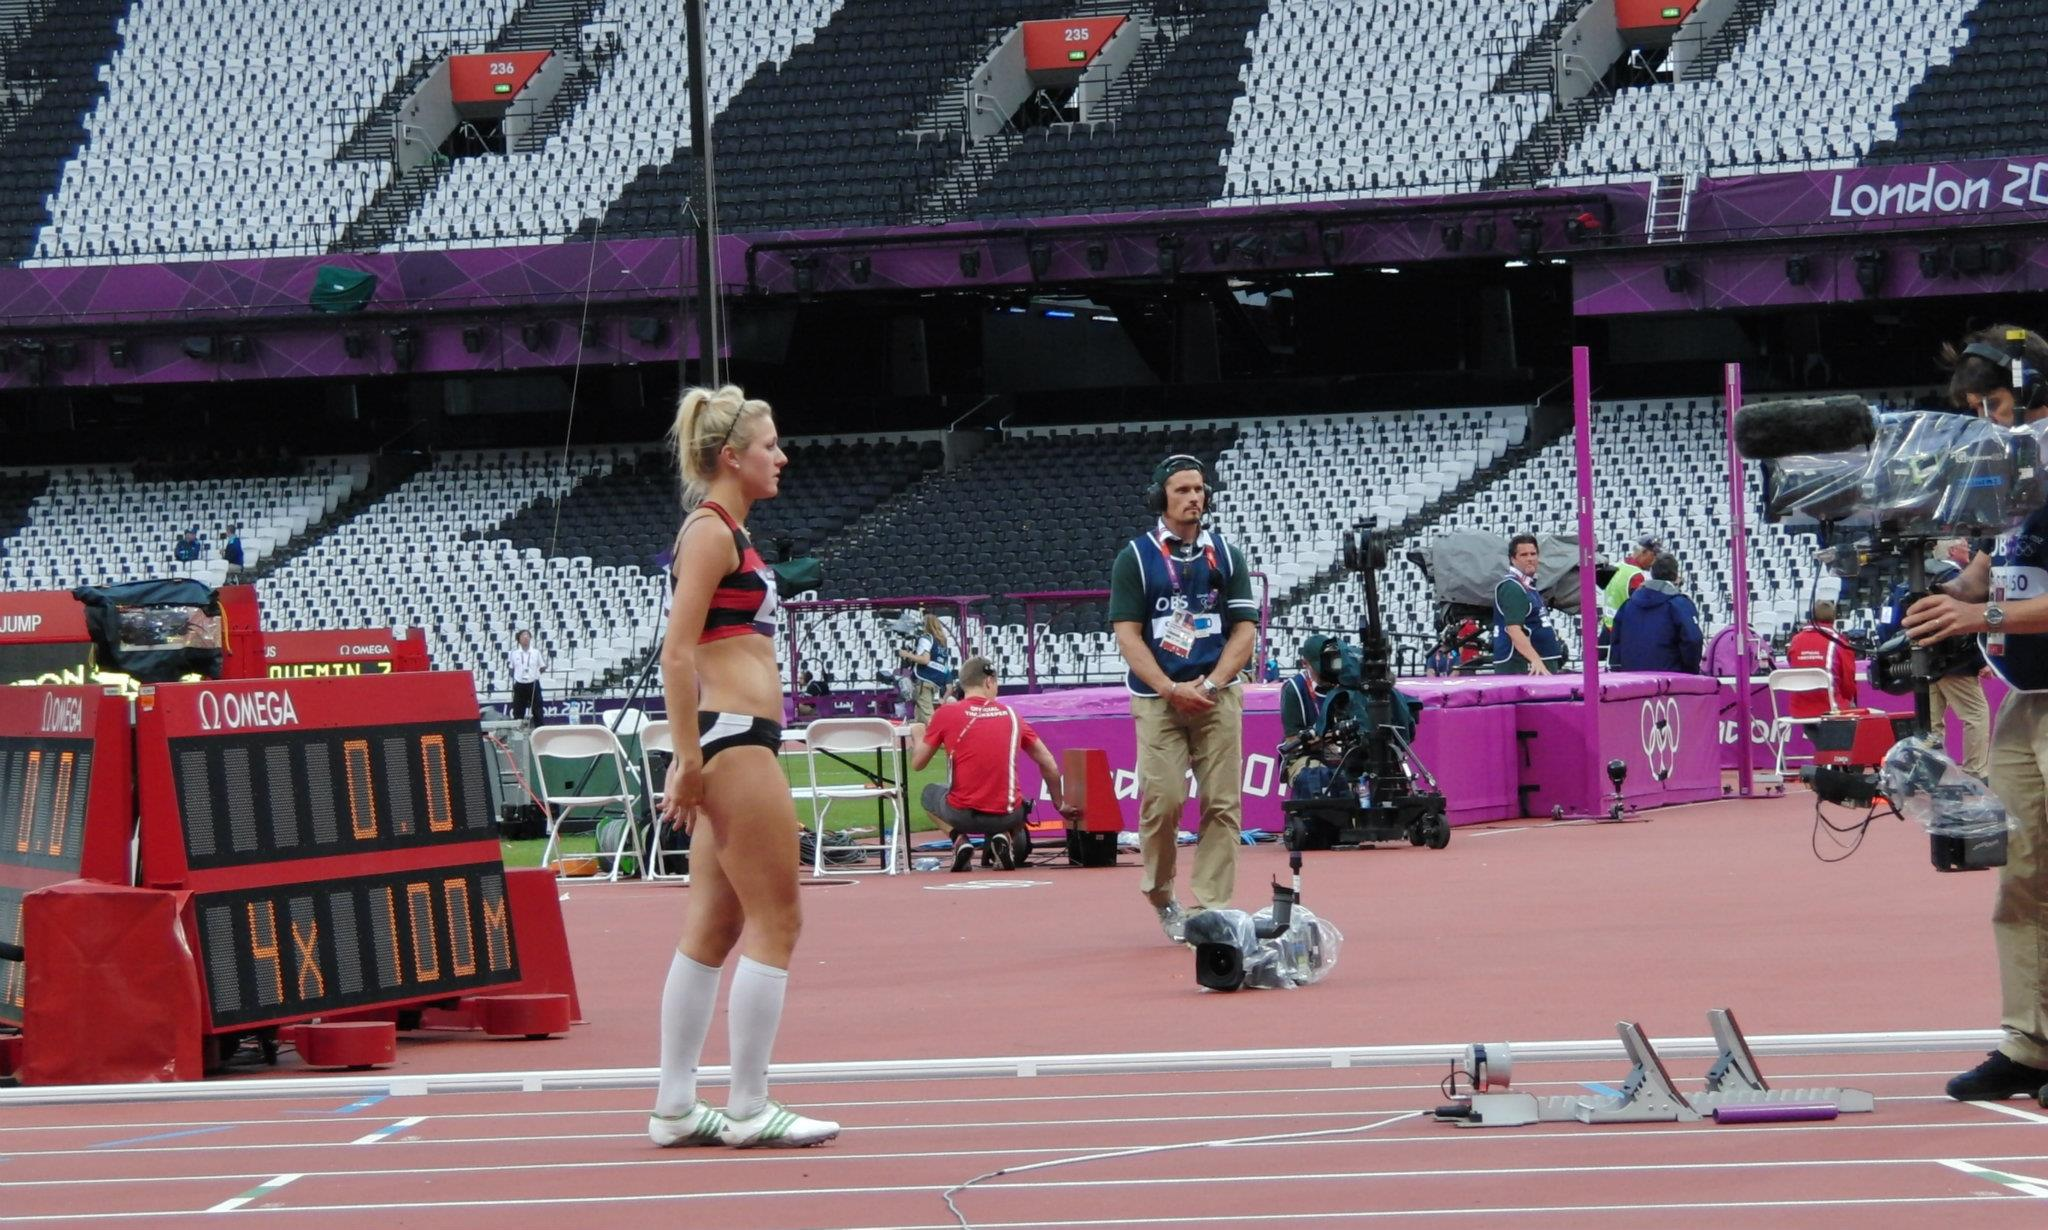 Jess_on_Olympic_Stdium_track